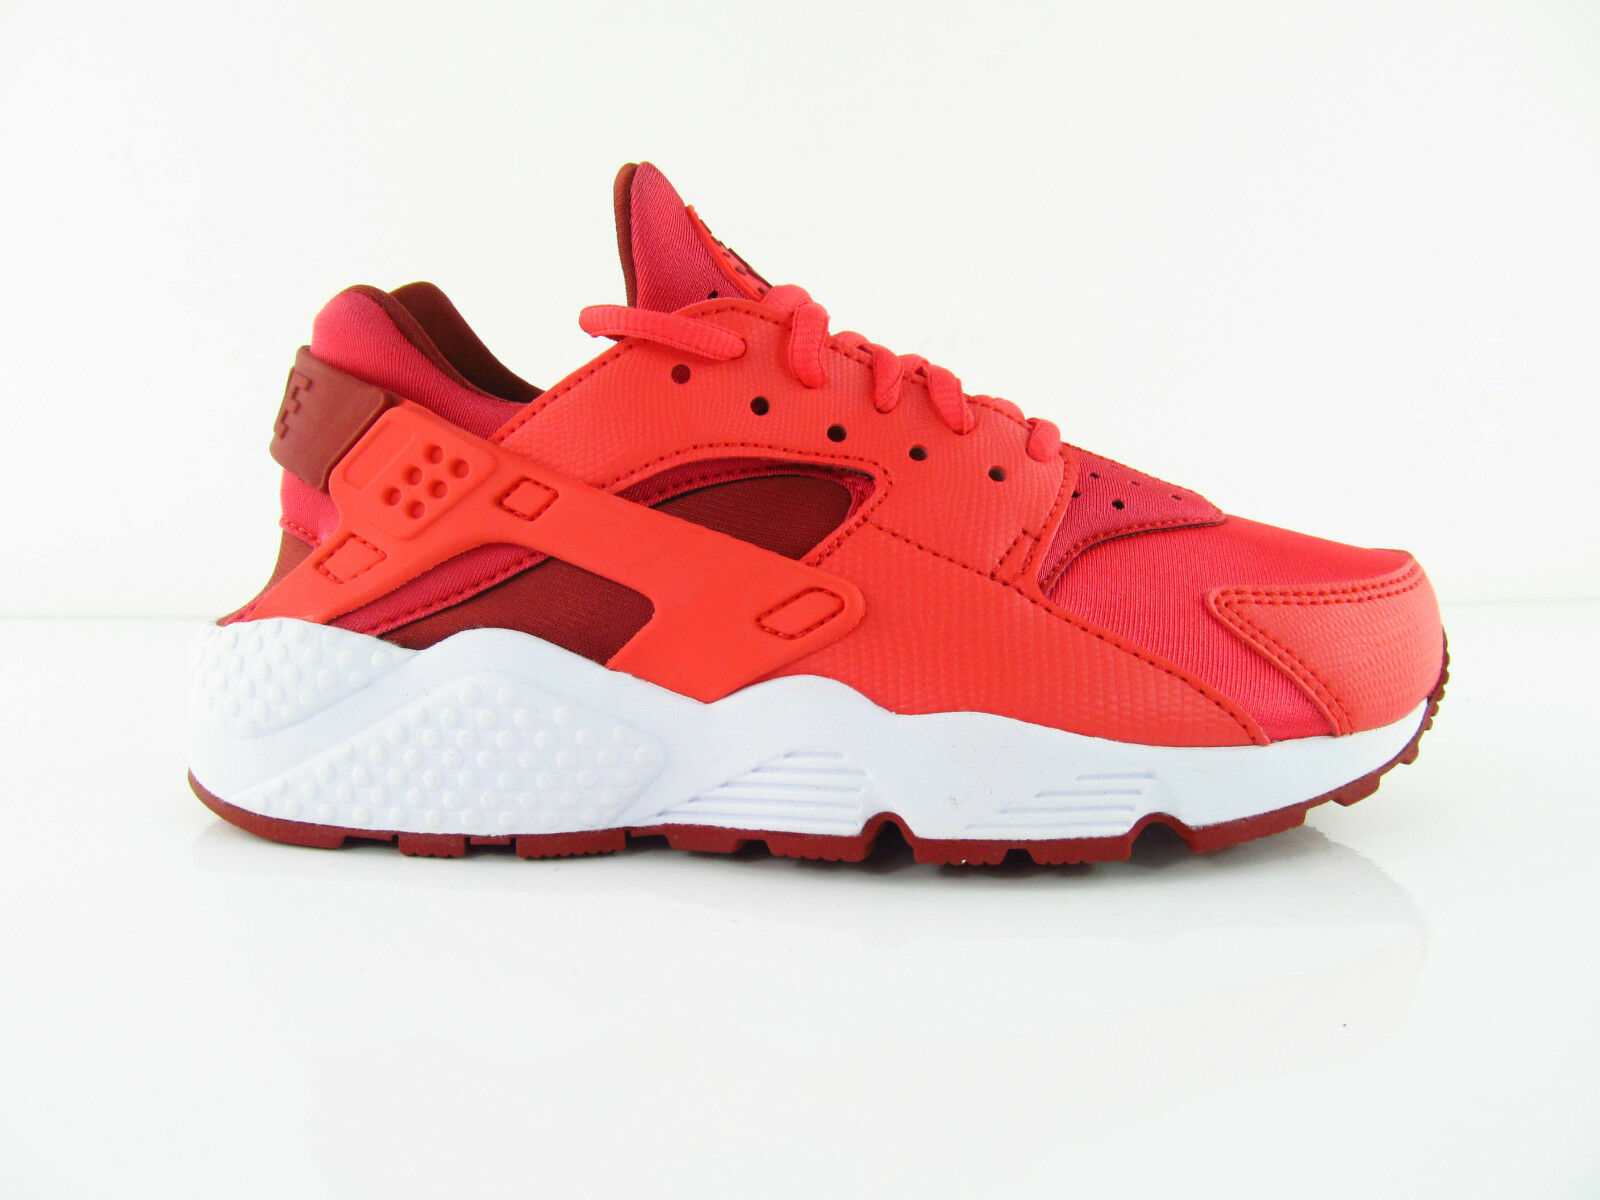 uk availability ed621 6c4af ... Nike W Huarache Air Huarache W Run Ember Glow Dark Cayenne US7 Eur 38  fa3662 ...